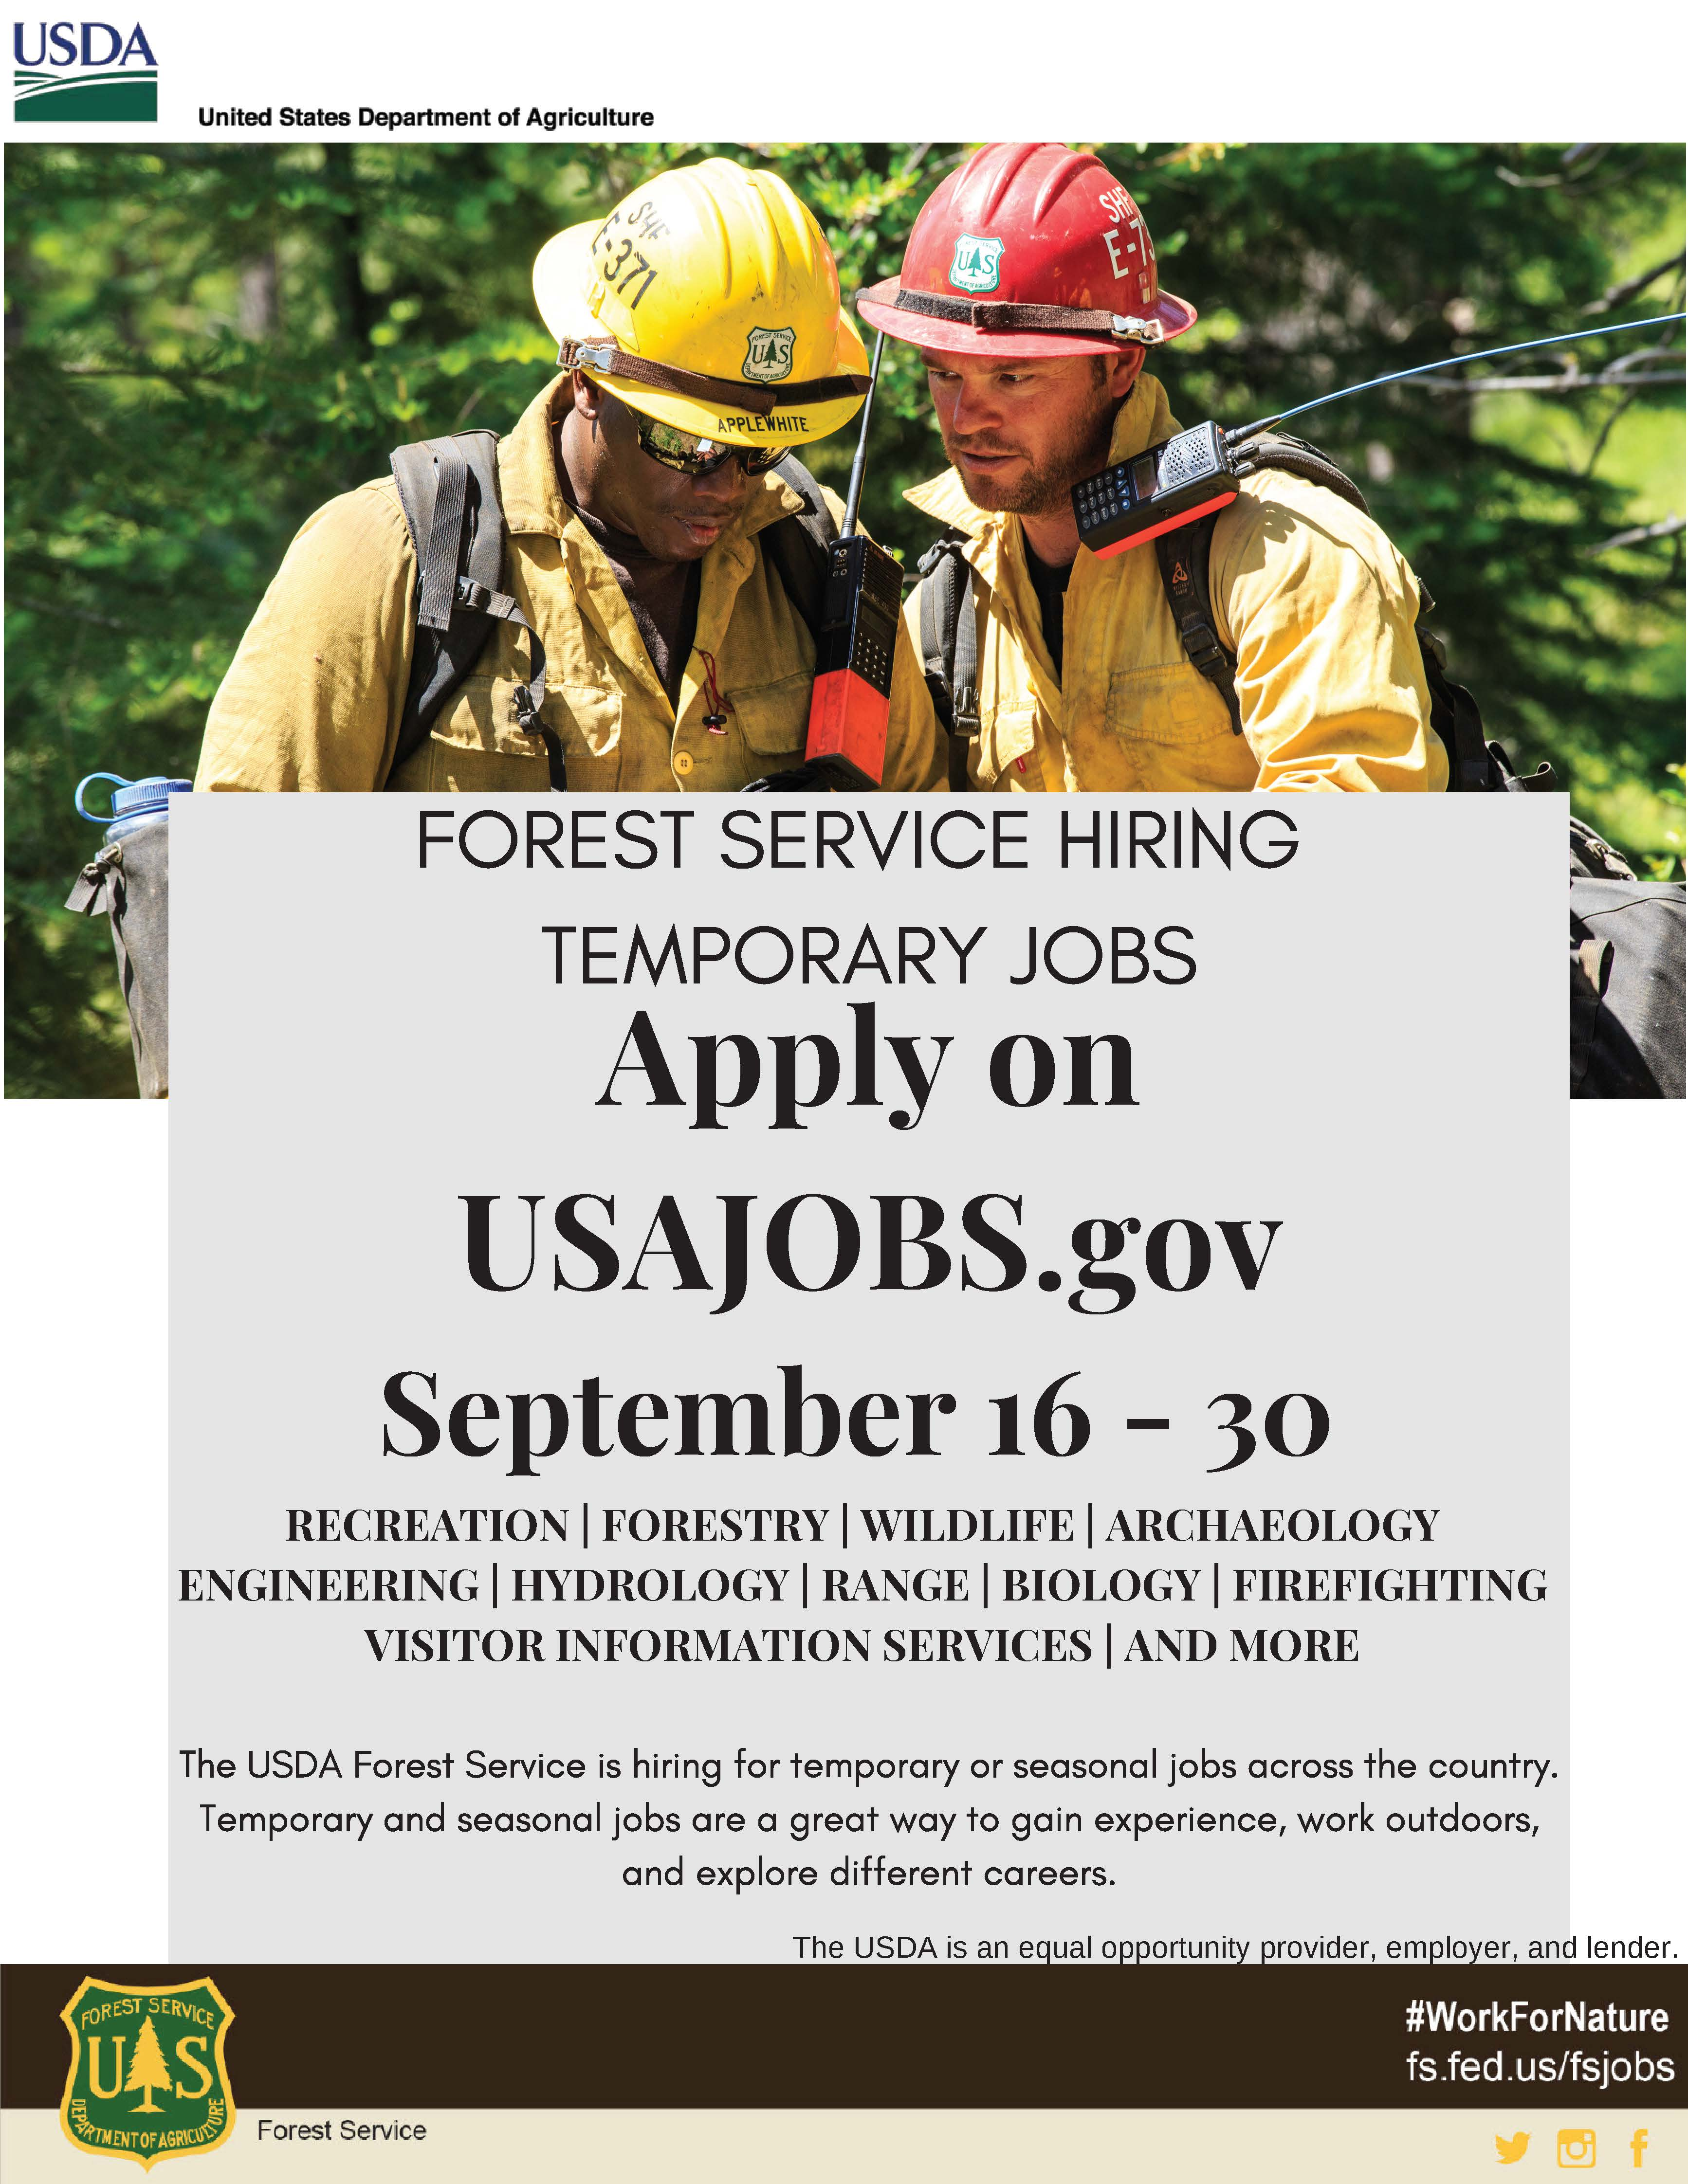 An advertising flyer for the 2010 Forest Service temporary hiring event